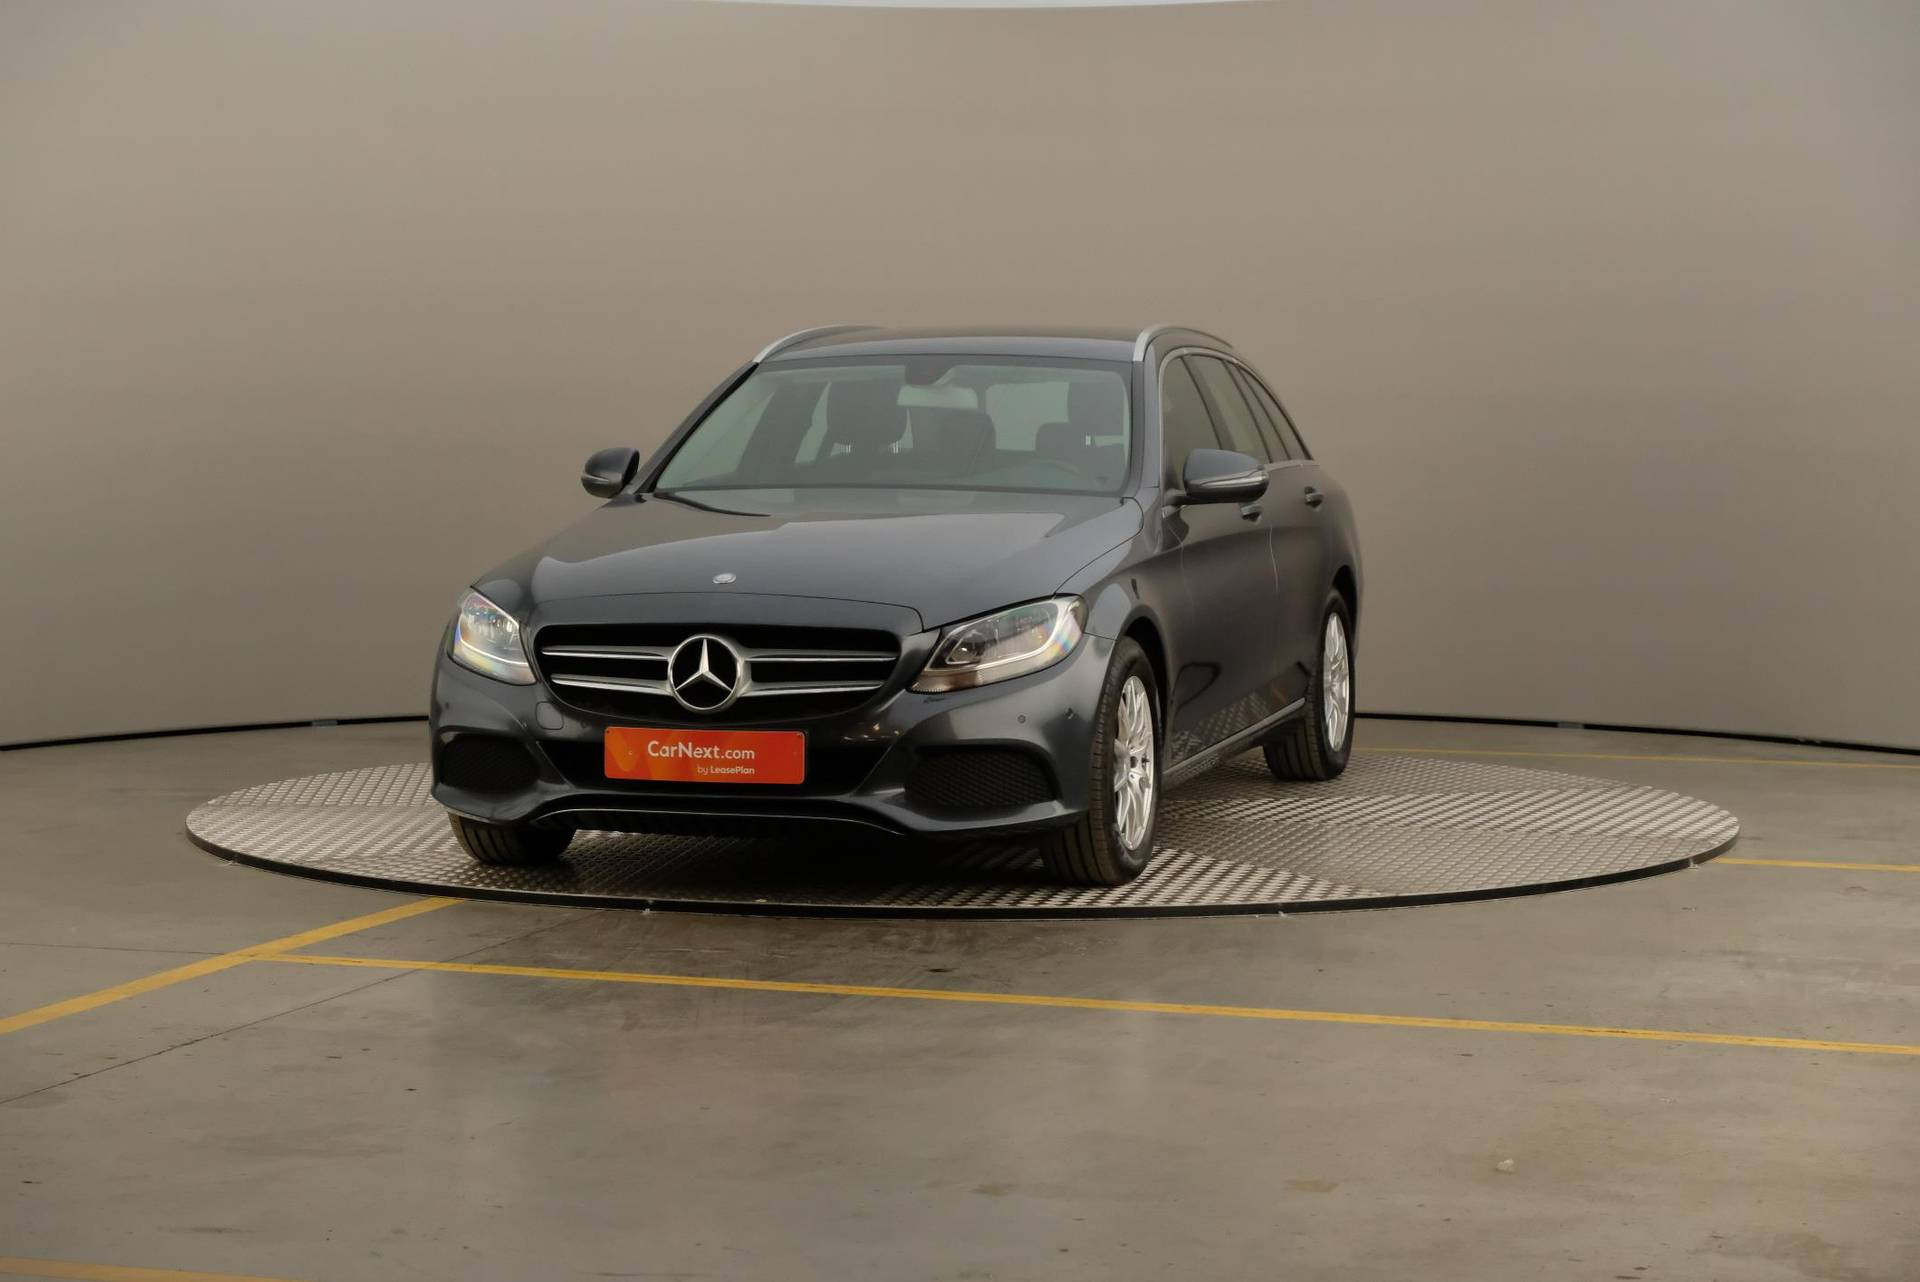 Mercedes-Benz C-Klasse 180 d PACK AVANTGARDE PACK EASY GPS PDC TREKHAAK EURO 6.., 360-image33